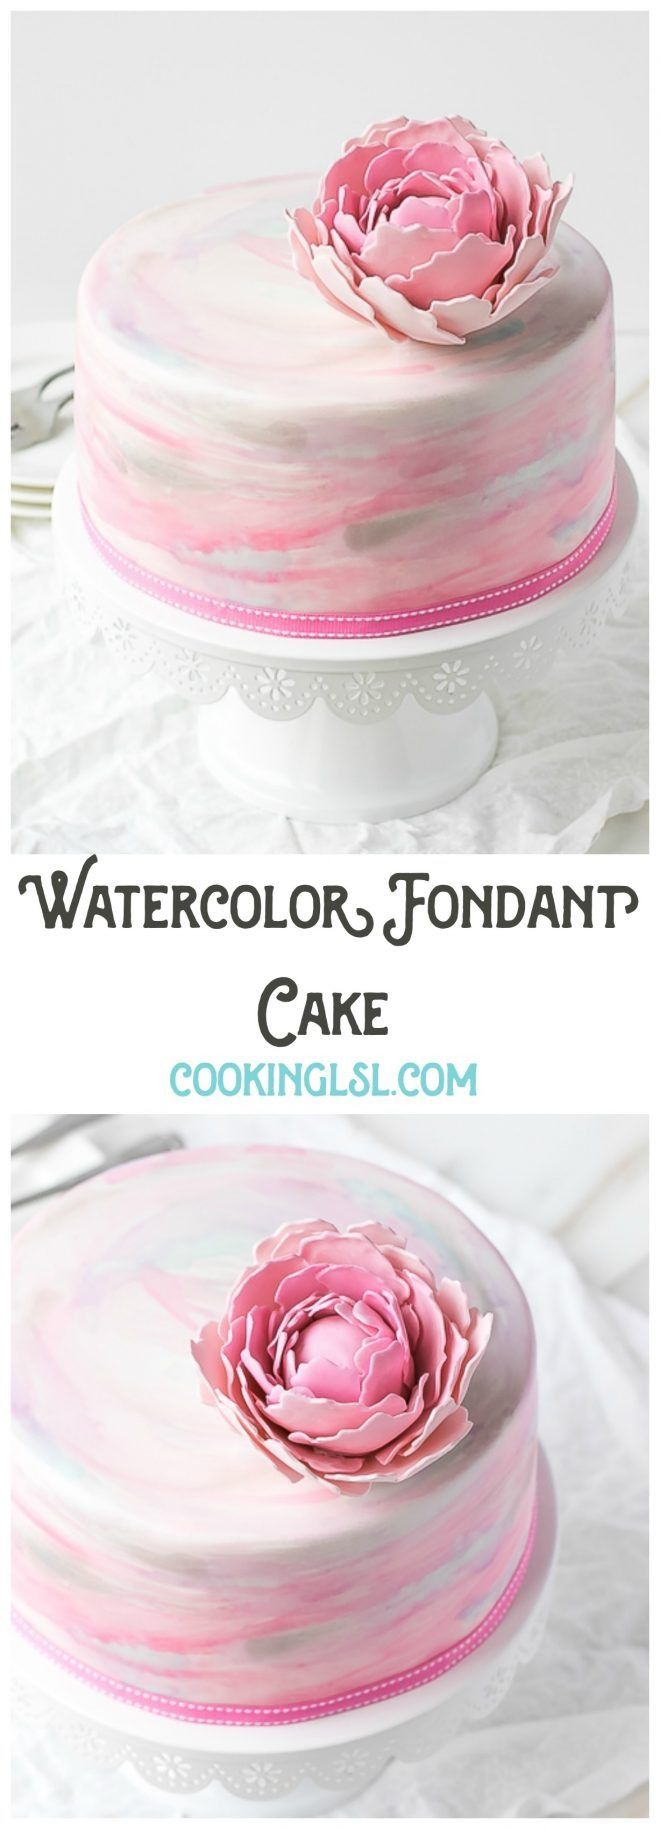 Beautiful watercolor fondant cake from cookinglsl.com! Perfect for any celebration - birthdays, bridal showers, weddings.